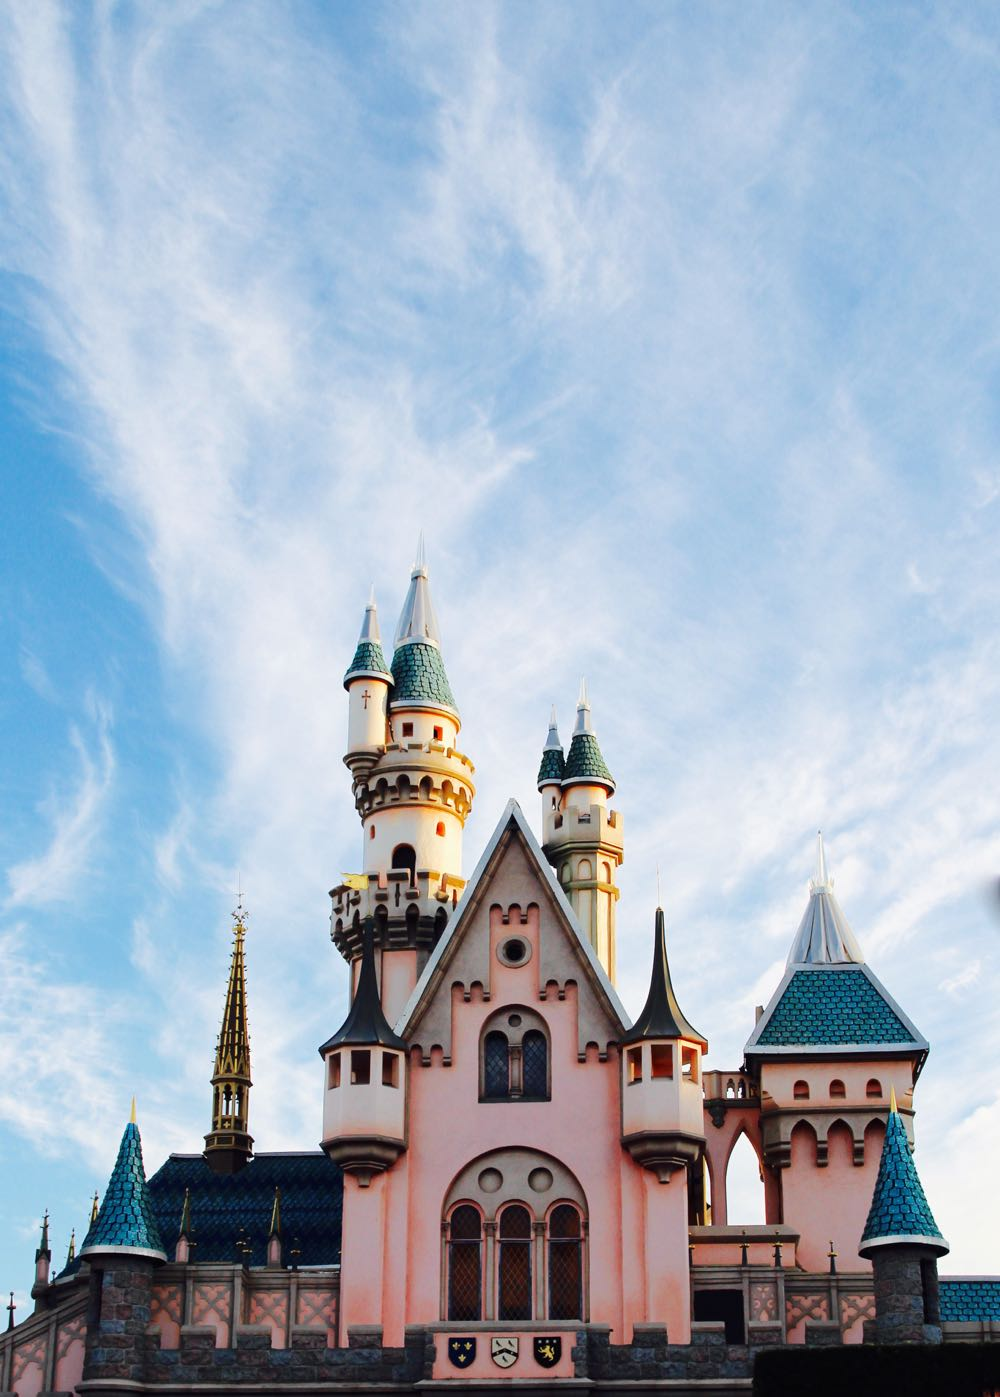 beautiful shot of the disney castle against the sky